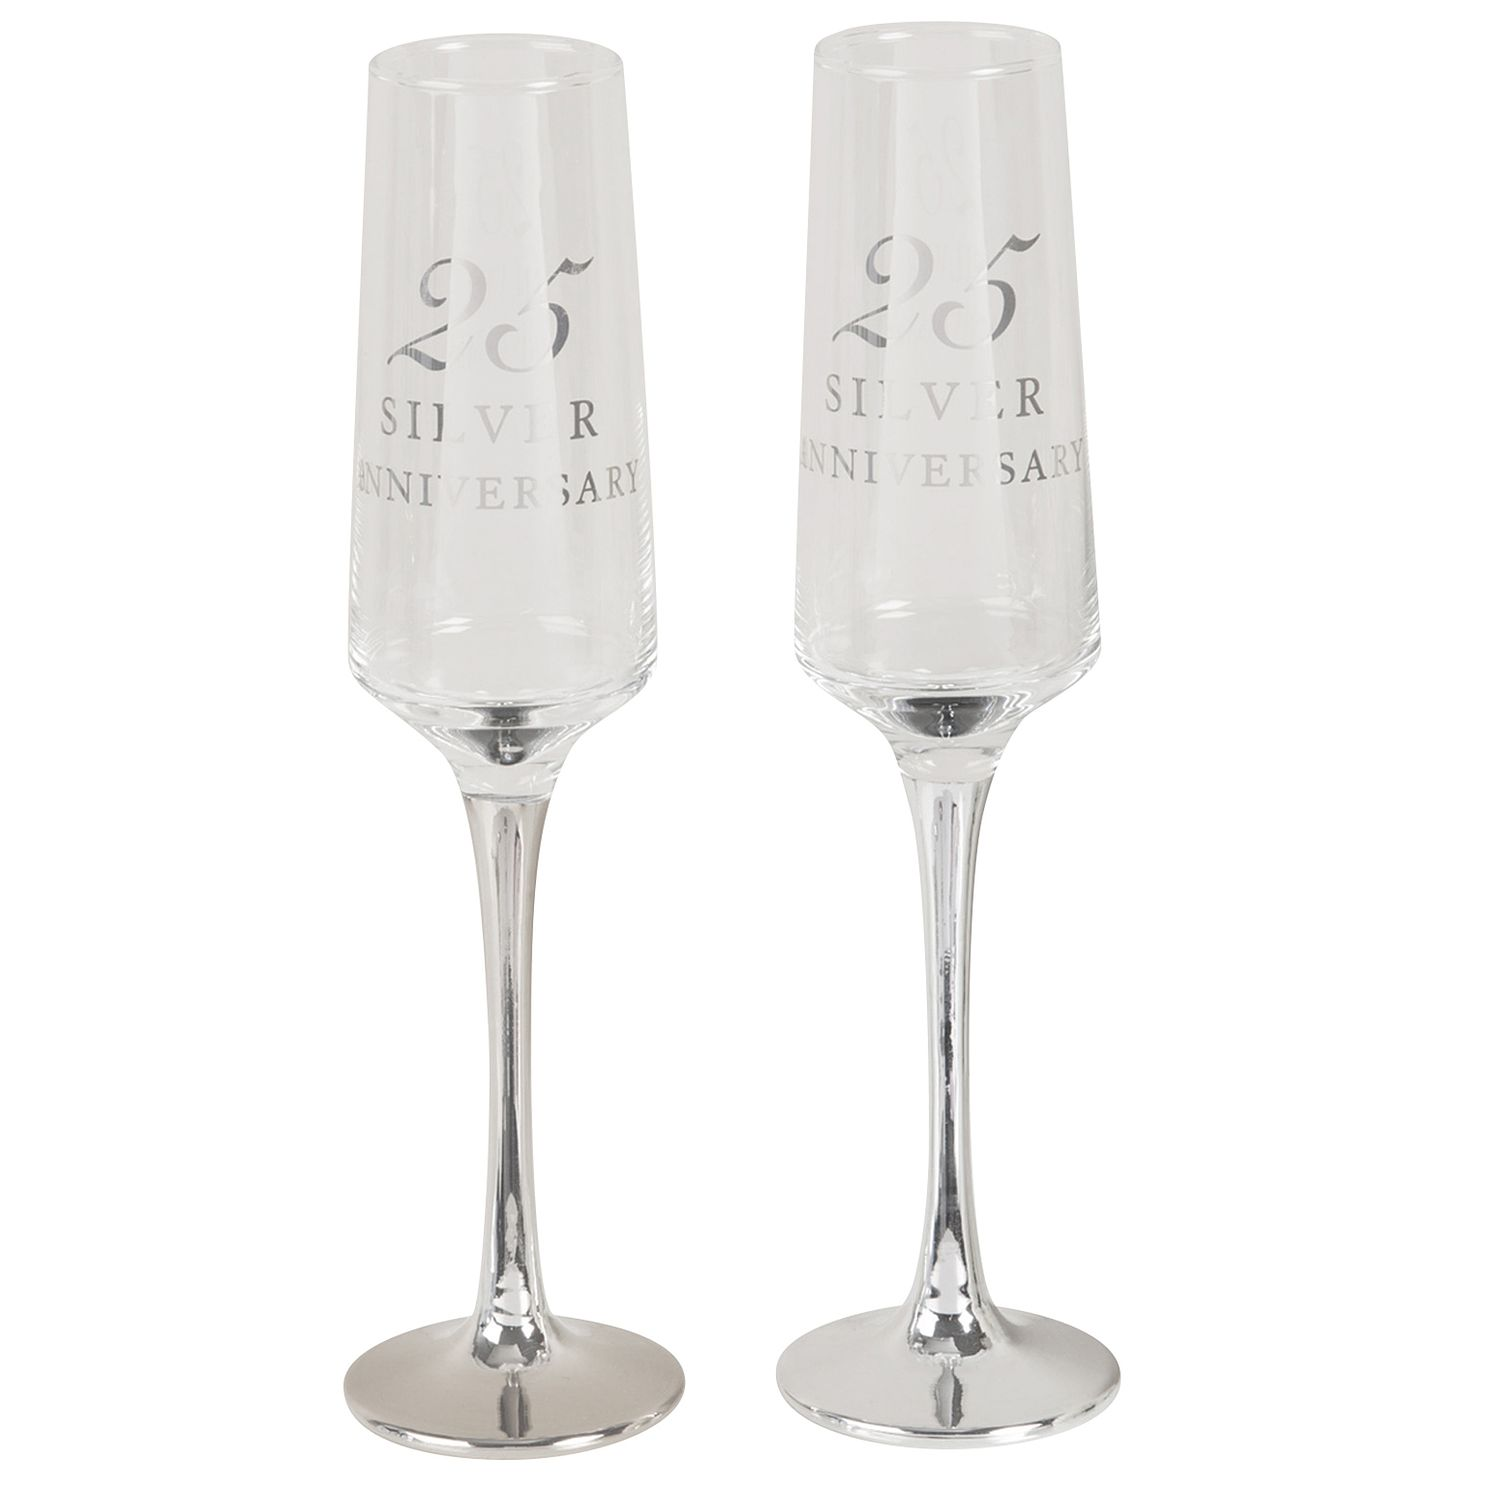 Amore 25th Silver Anniversary Set of 2 Glass Flutes - Product number 8196907